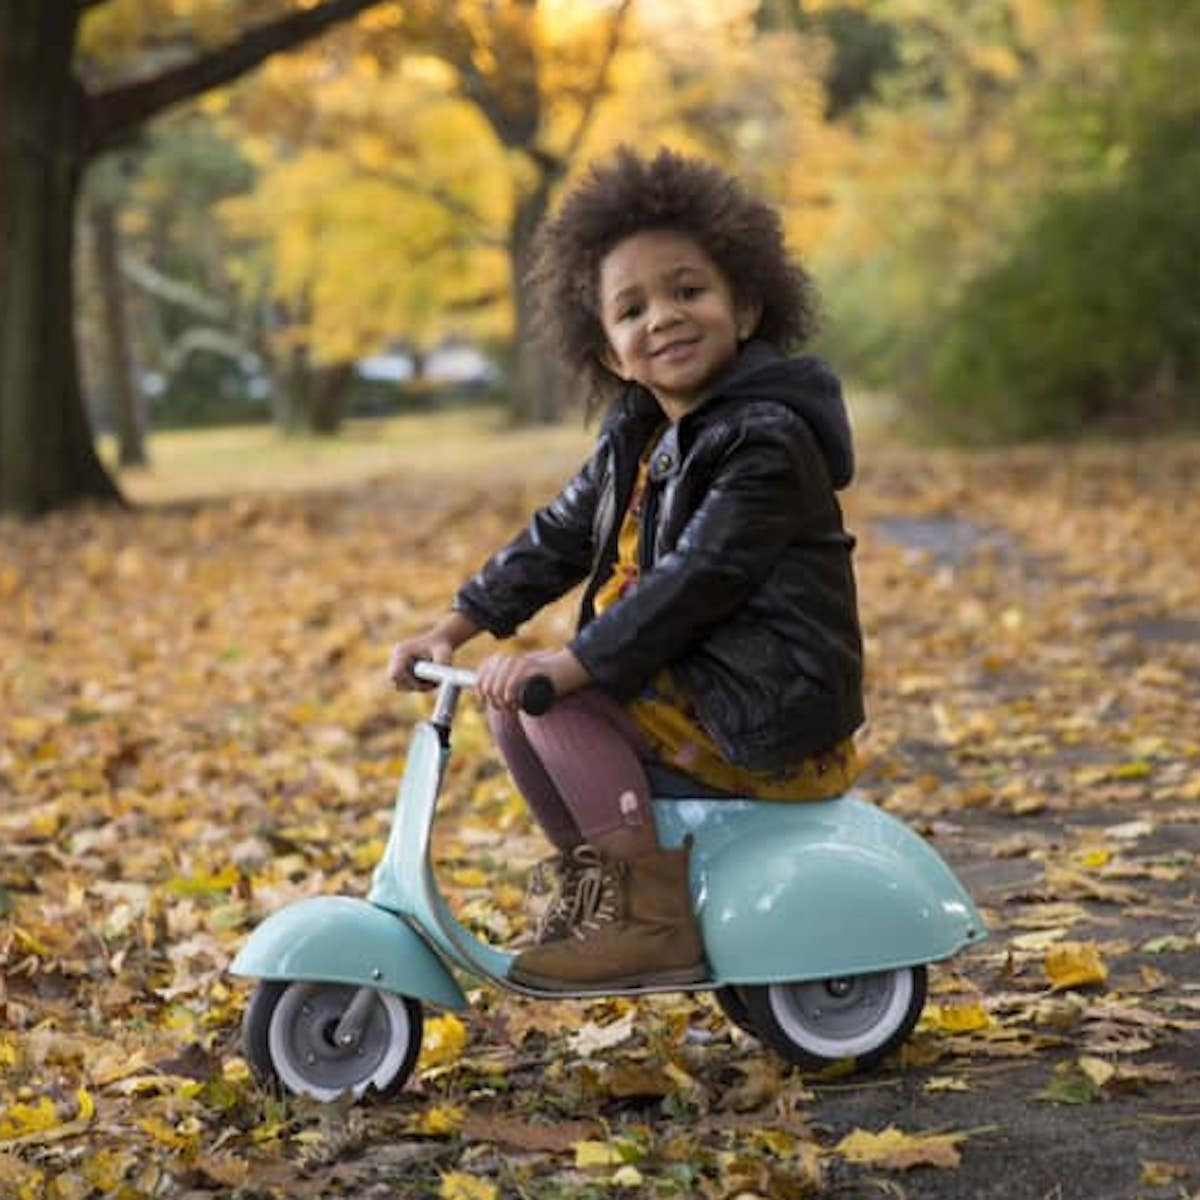 Young child riding an Ambosstoys scooter in the fall foliage